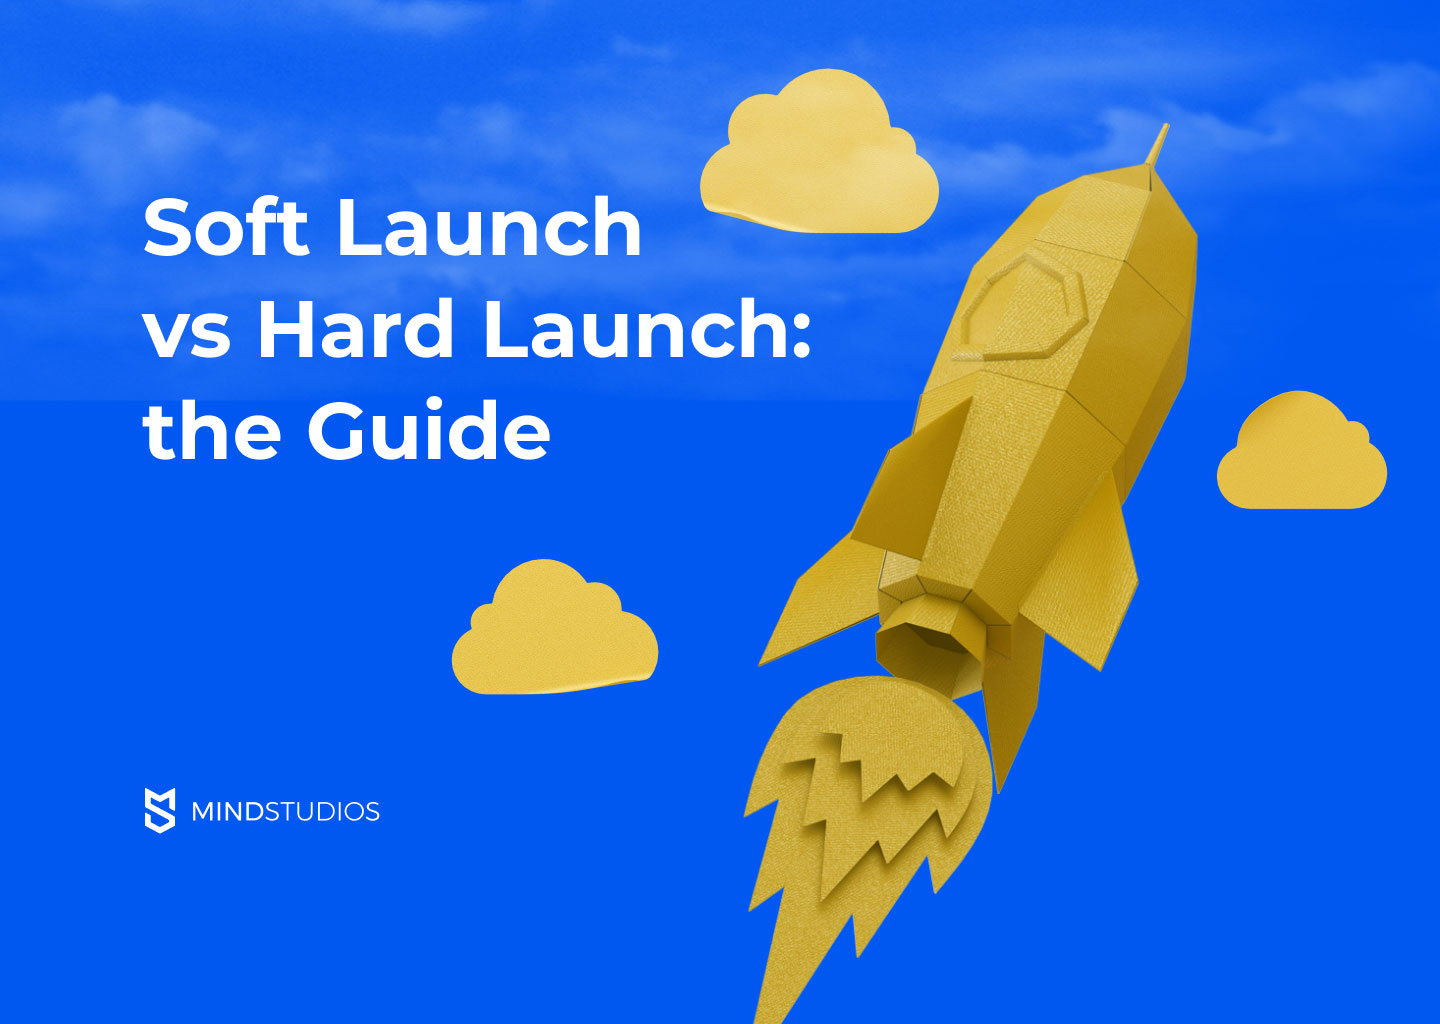 Soft Launch vs Hard Launch: The Guide